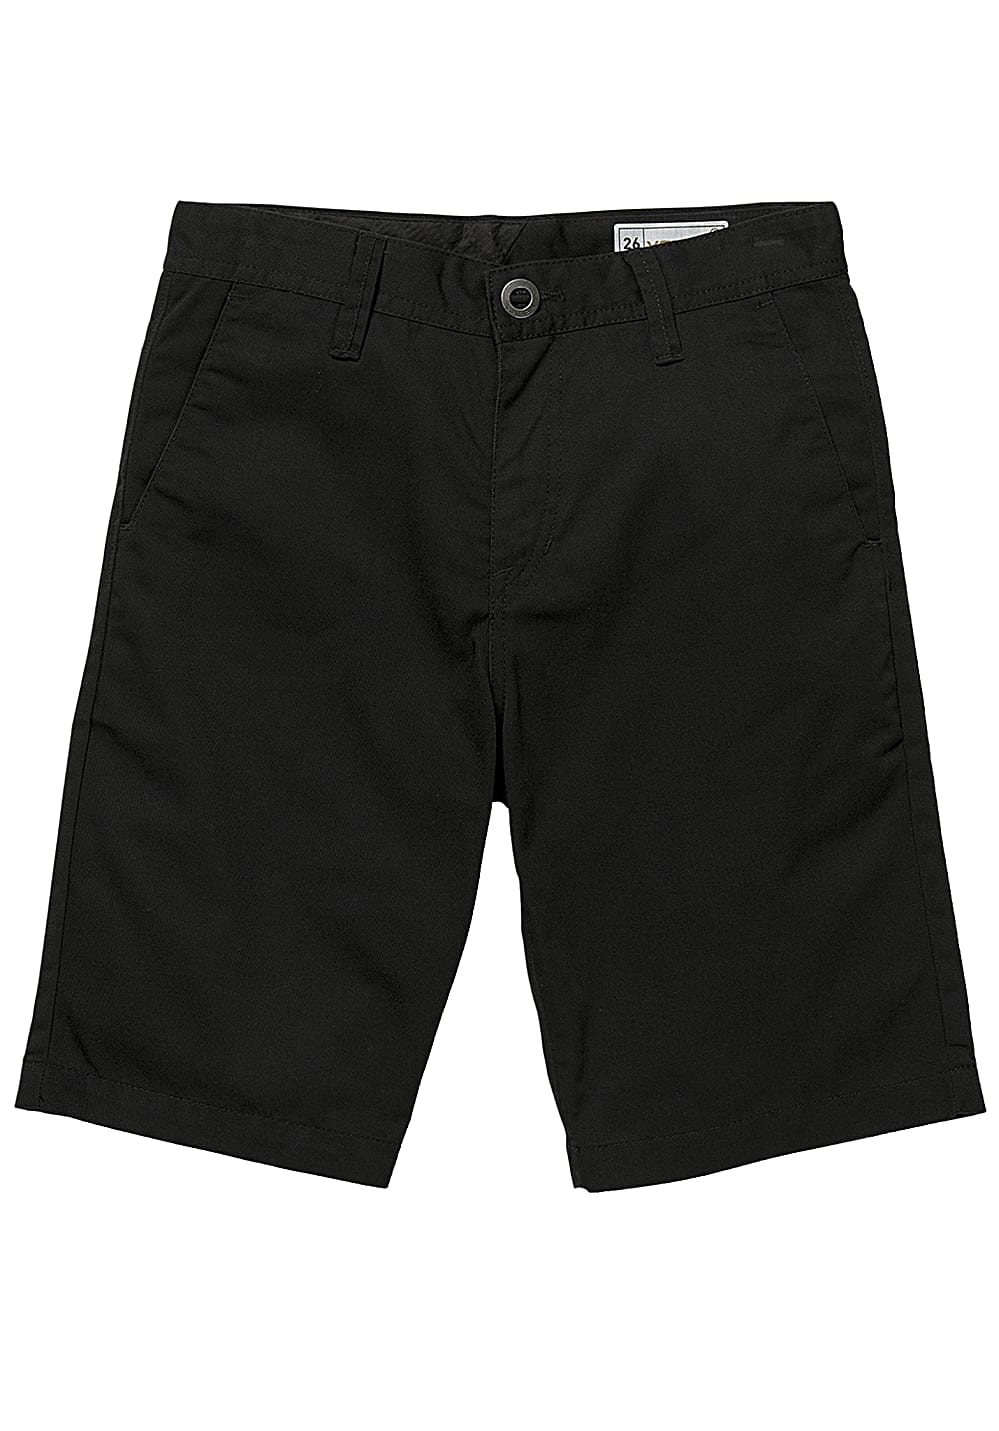 Boyshosen - Volcom Frickin Chino Shorts Schwarz - Onlineshop Planet Sports